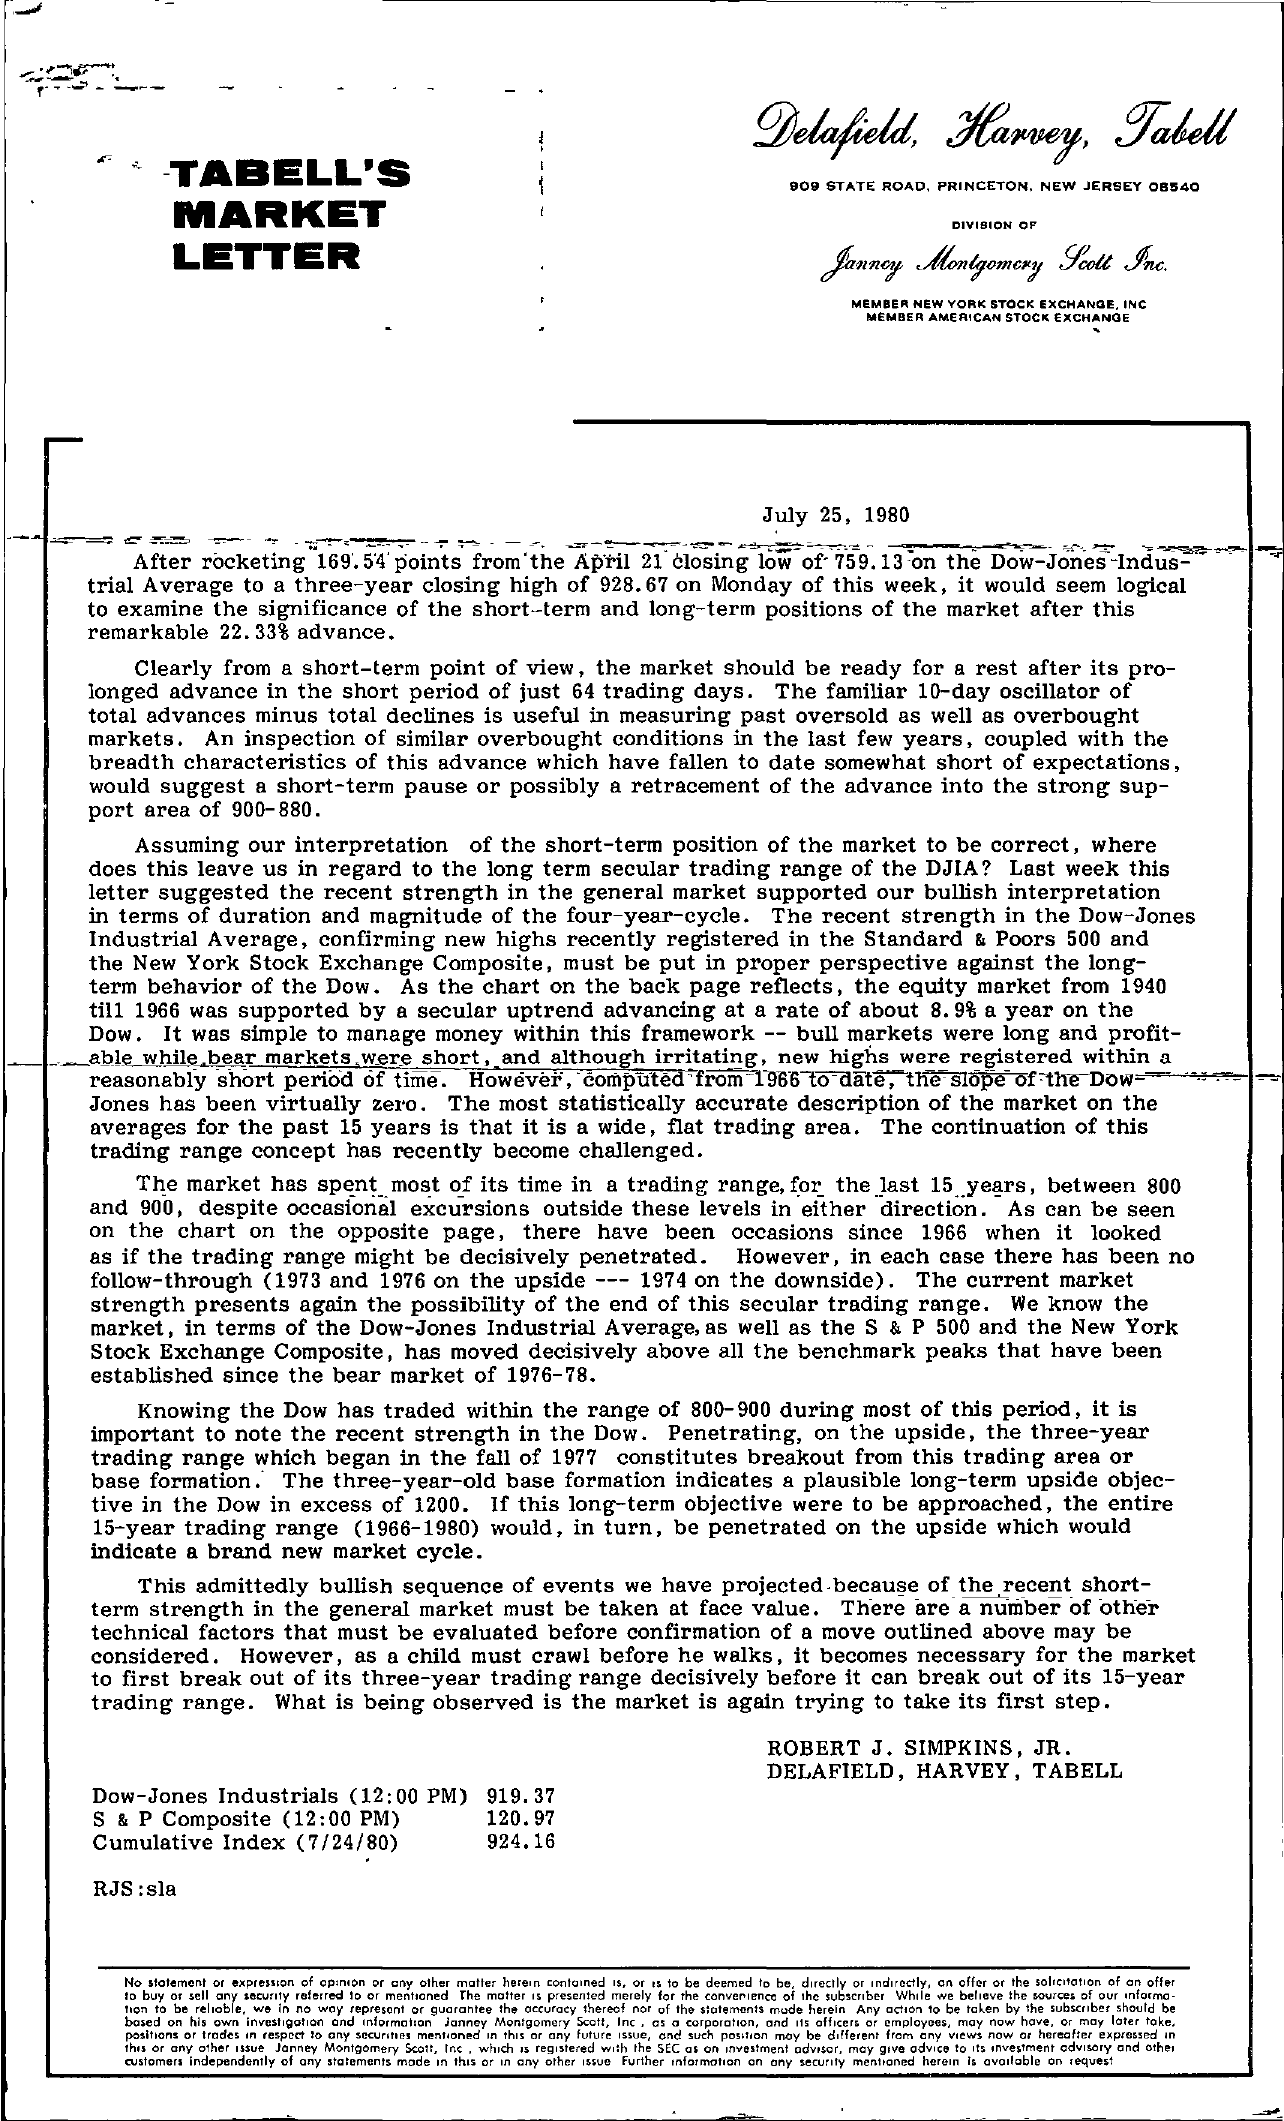 Tabell's Market Letter - July 25, 1980 page 1